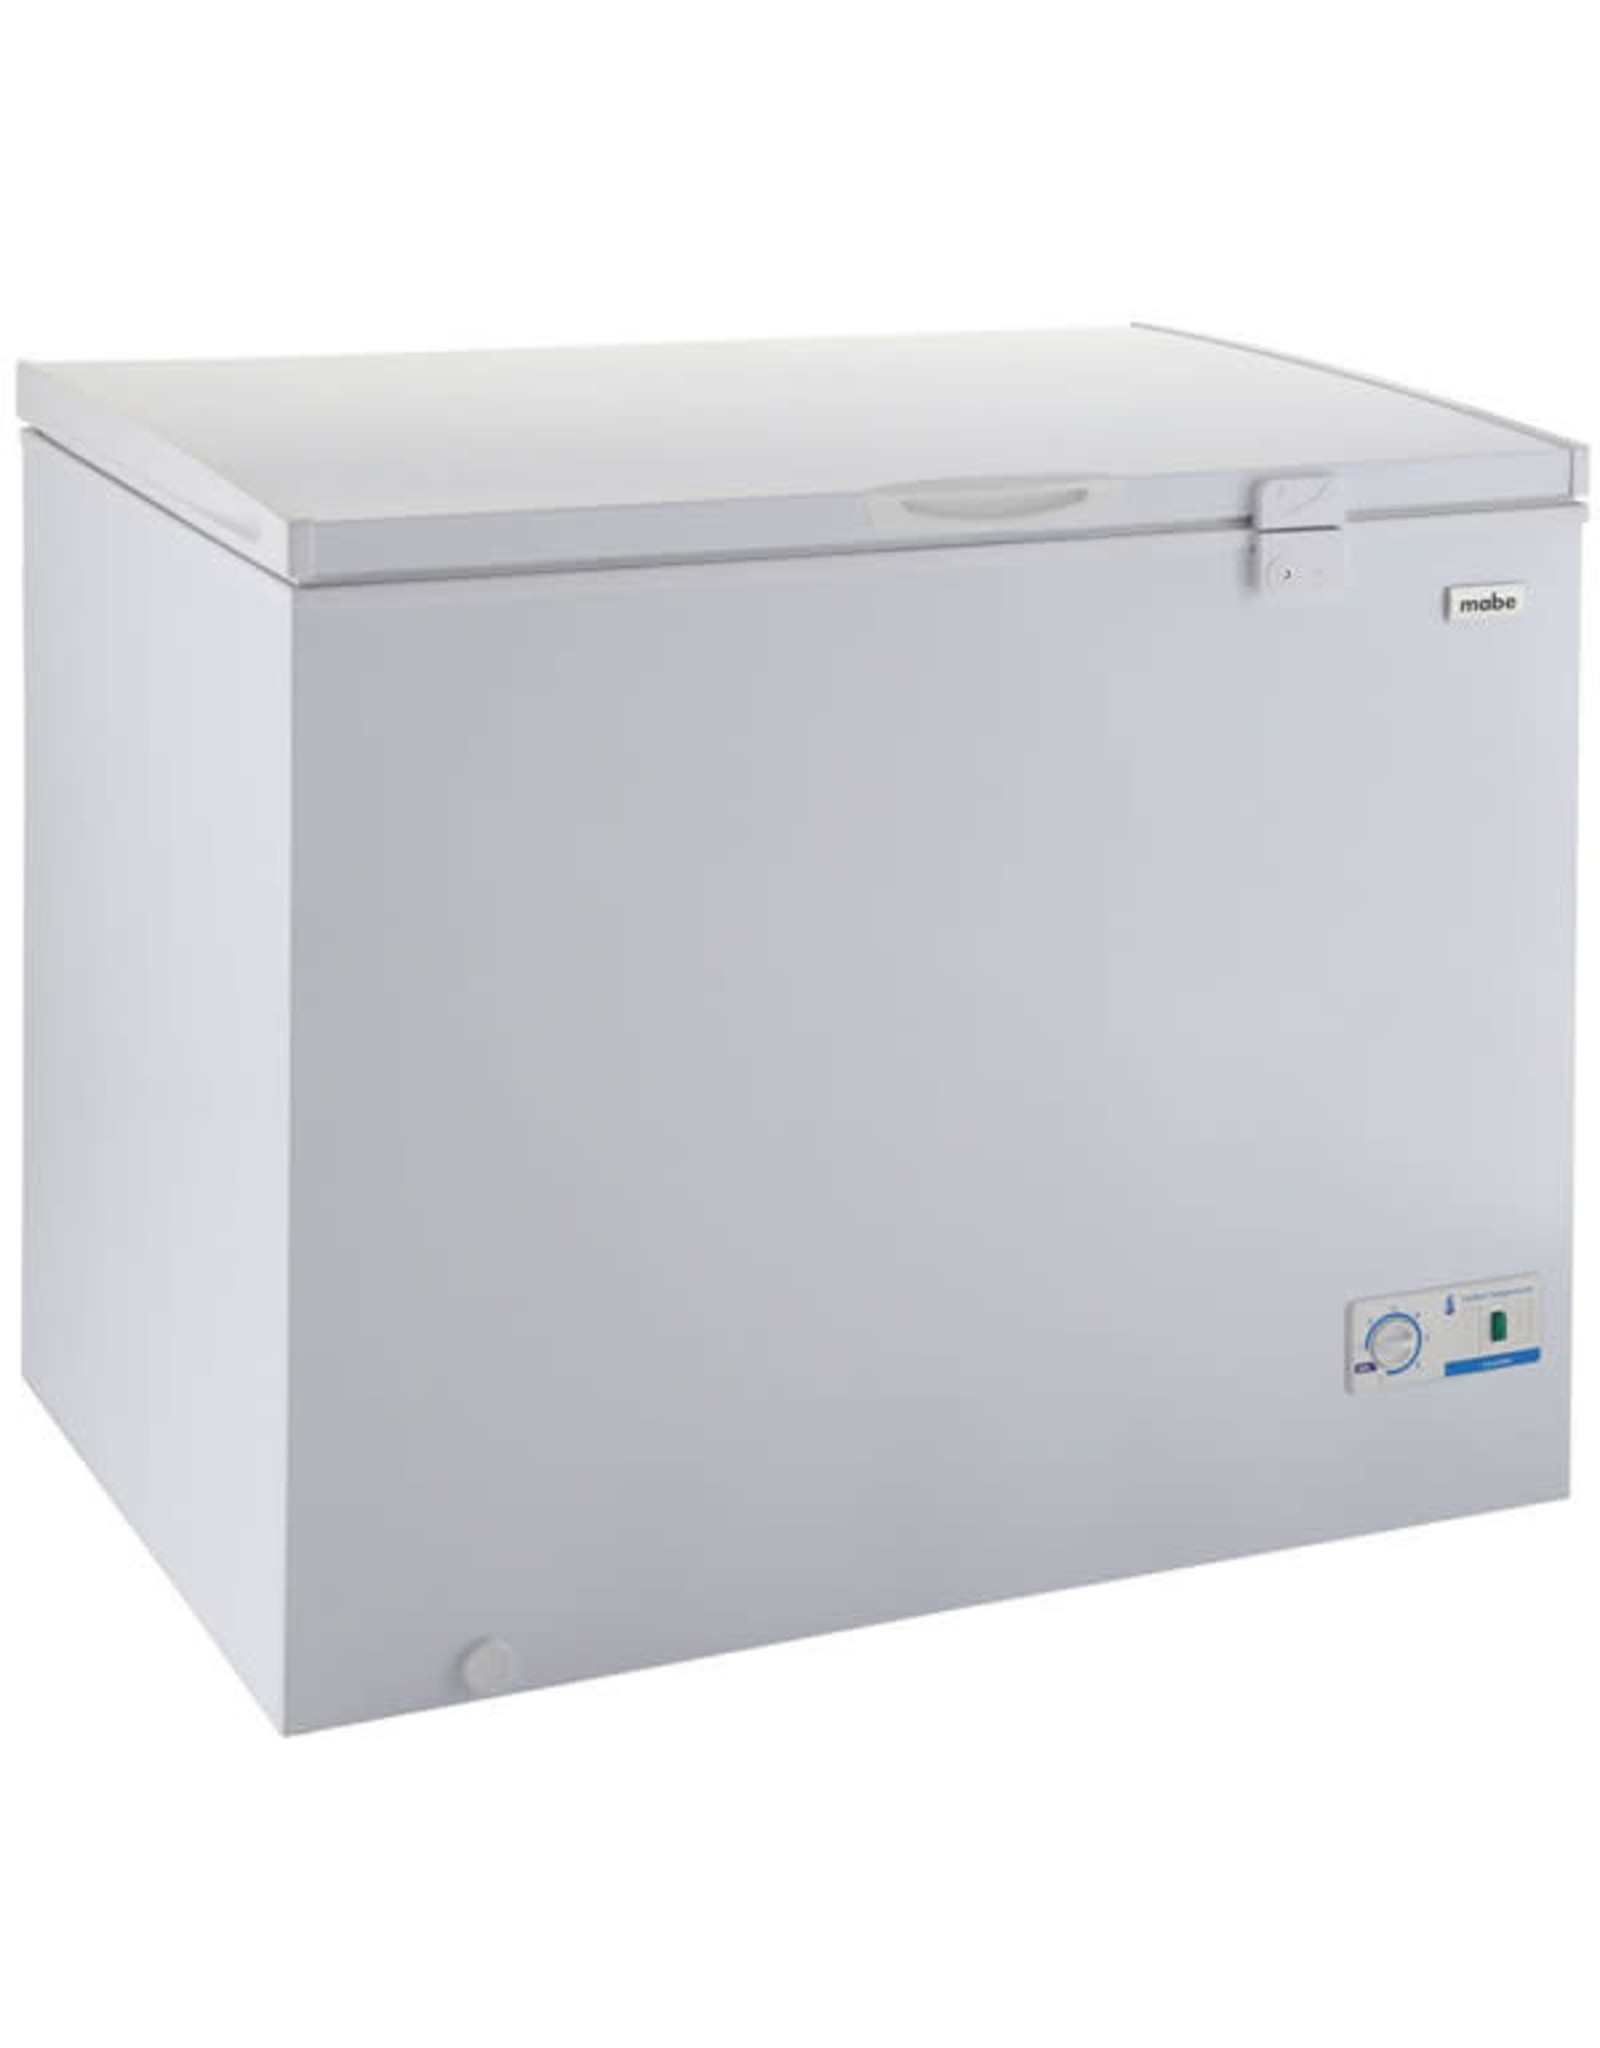 Mabe Mabe Chest Freezer 9 cuft CHM9BPL2